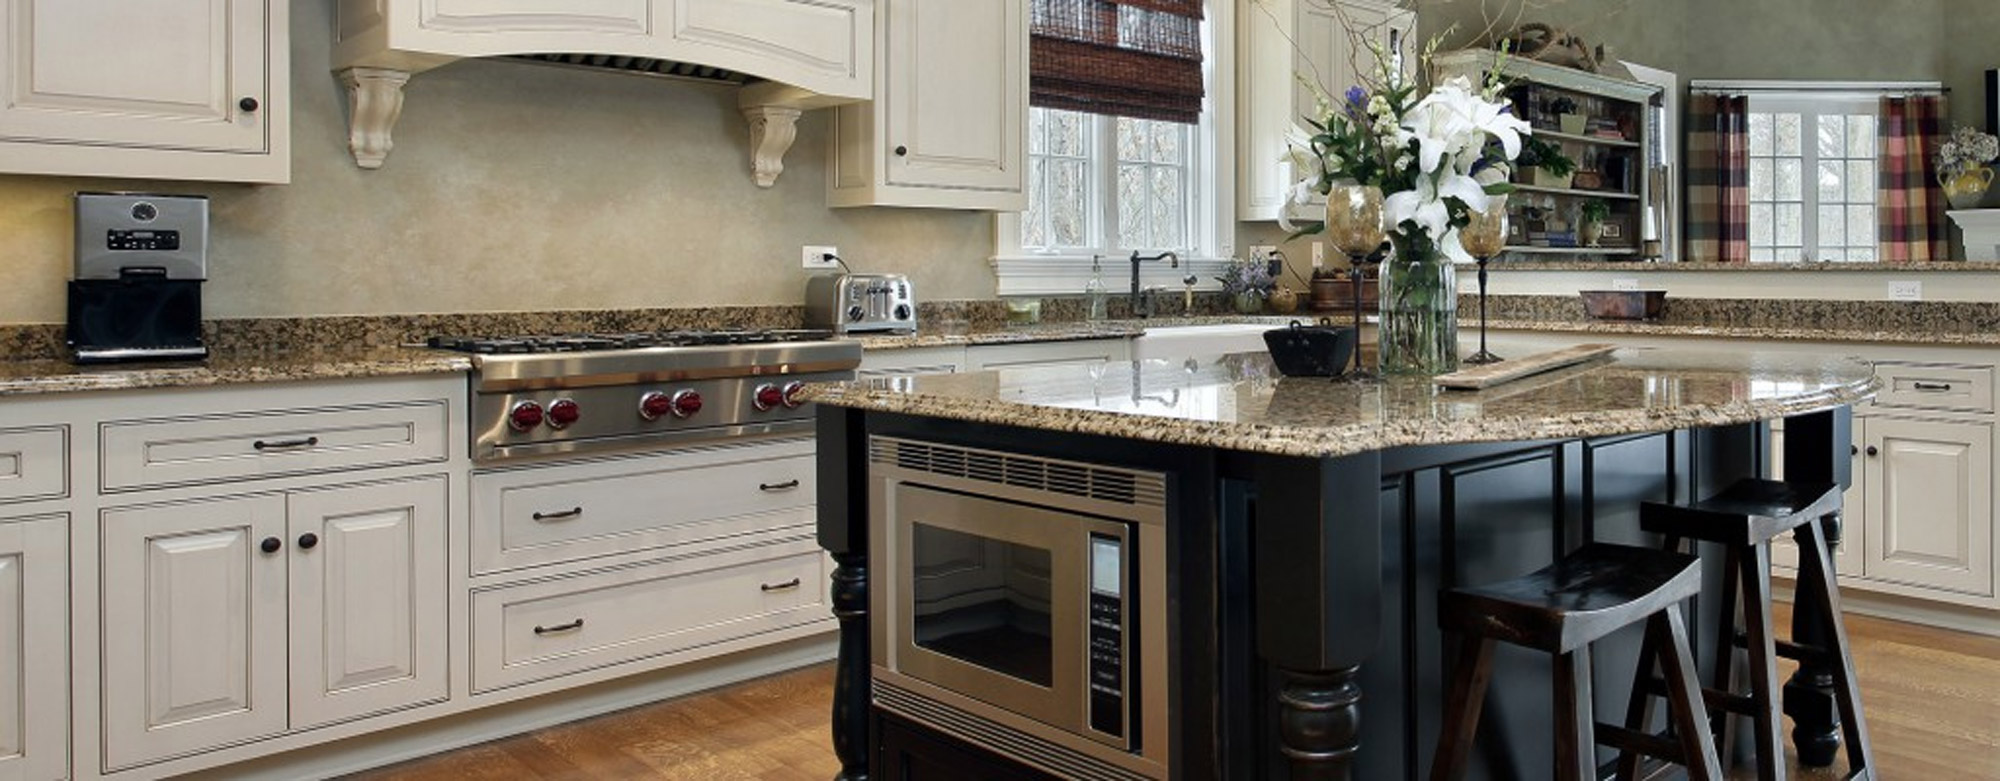 Granite Colors For Kitchen Countertops As Per Vastu : Granite Countertops Salt Lake City, UTAH 29.99 Per SF Installed The ...